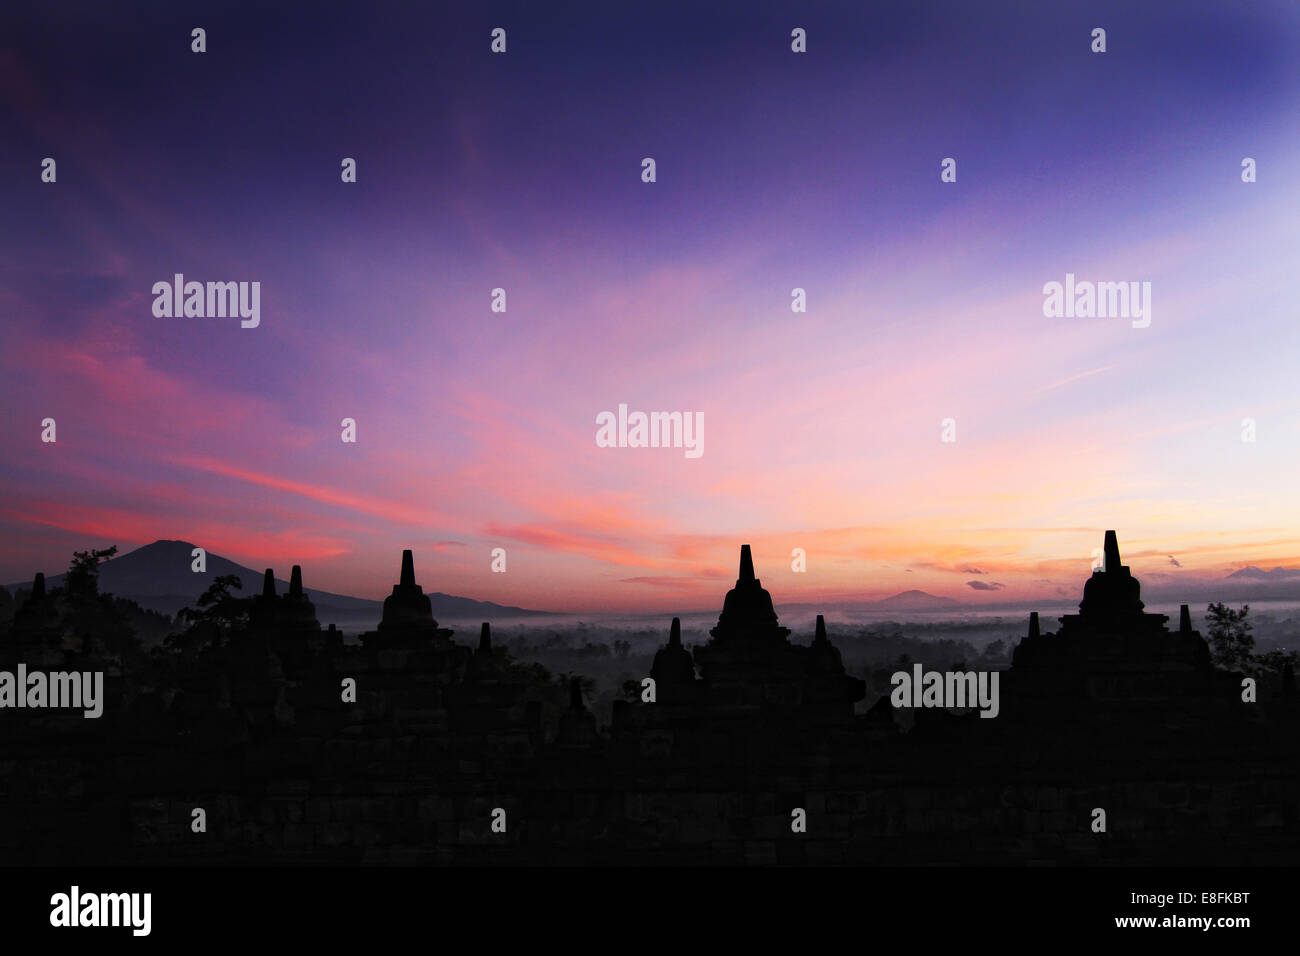 Indonesia, Java, Magelang, Silhouette of Borobudur Temple, 9th century - Stock Image